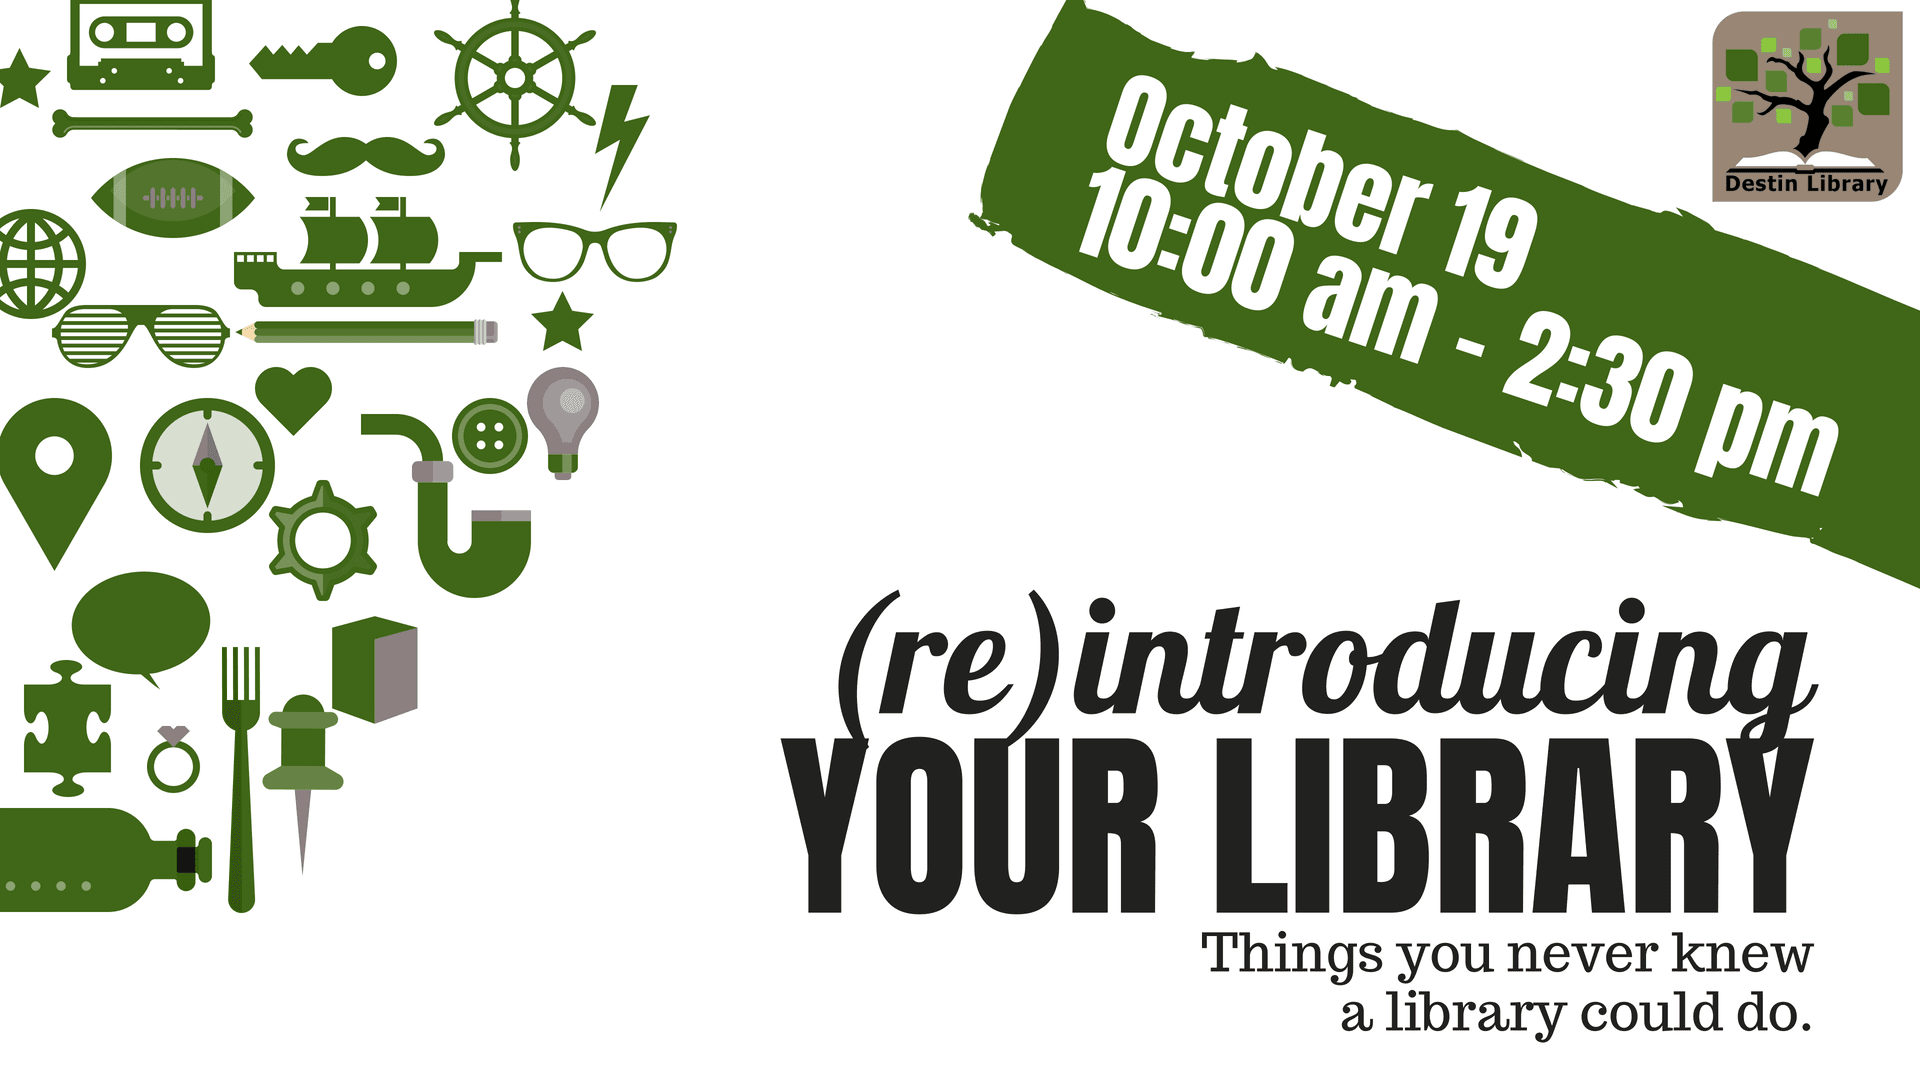 Reintroducing Your Library event, October 19th, 2018